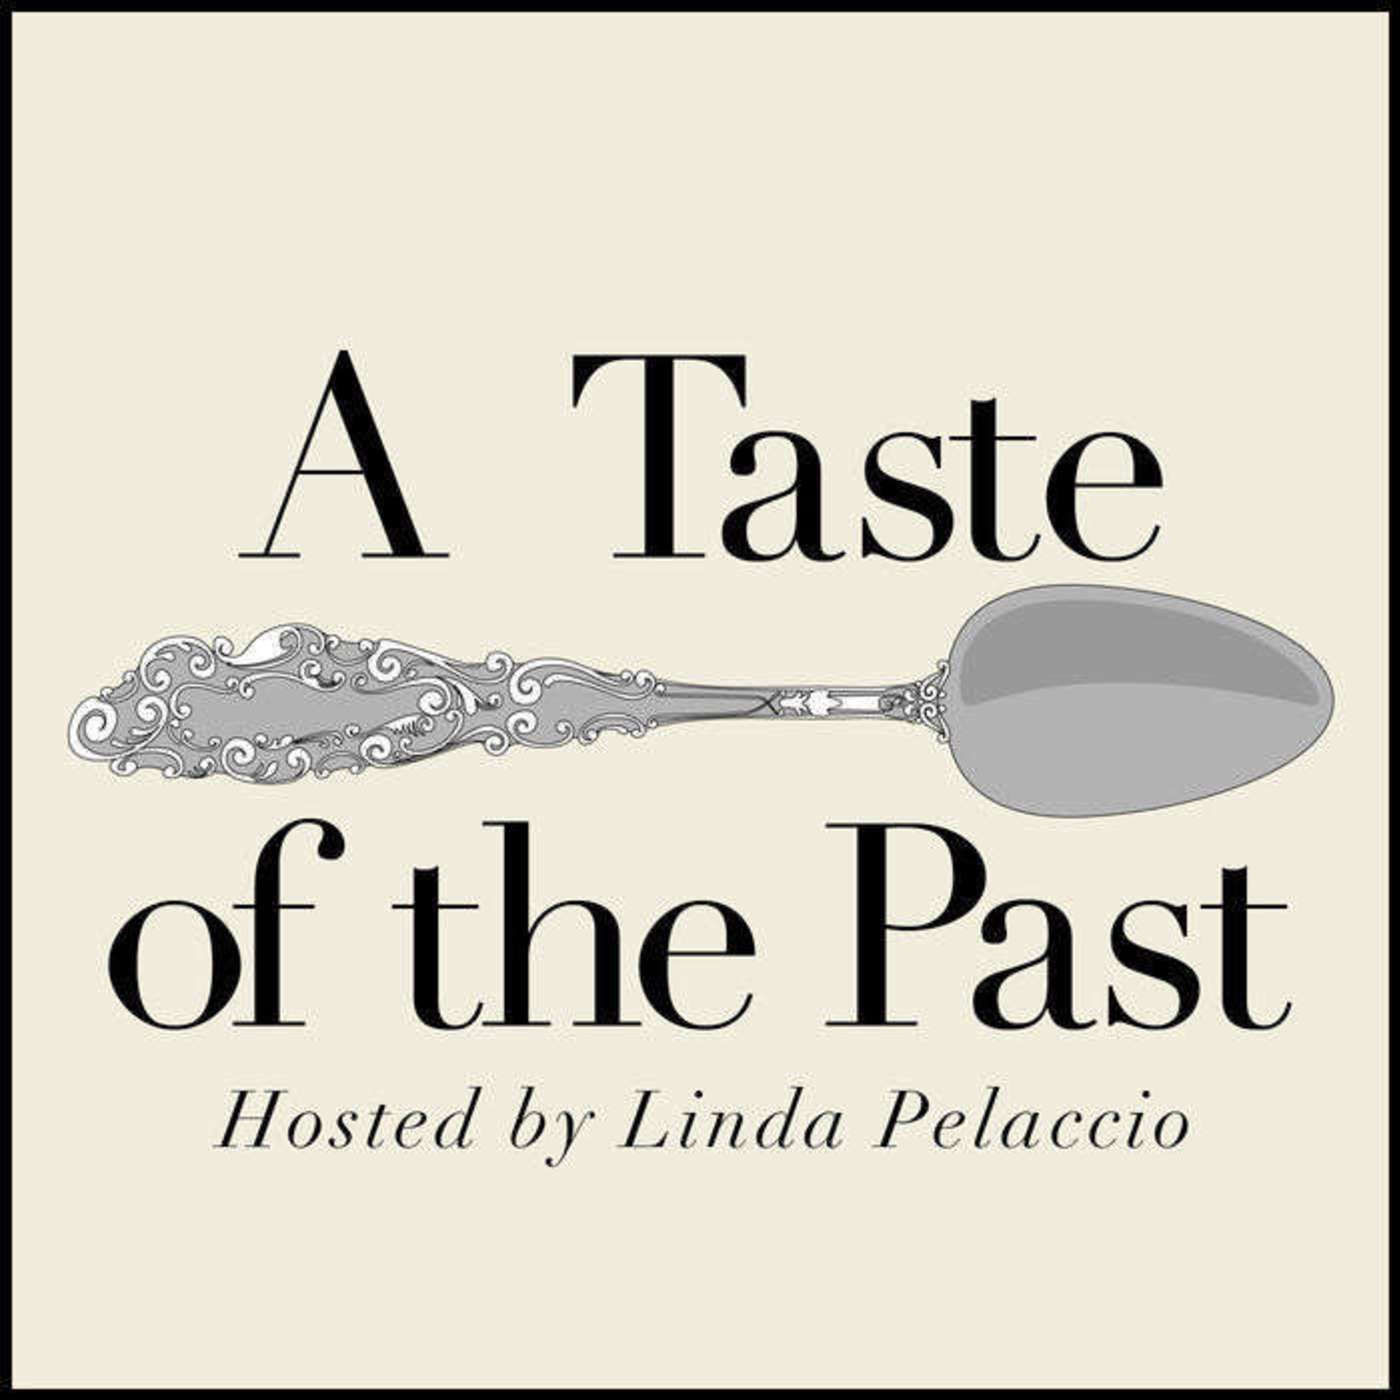 Episode 71: Eat Your Words: A Culinary History of the English Language